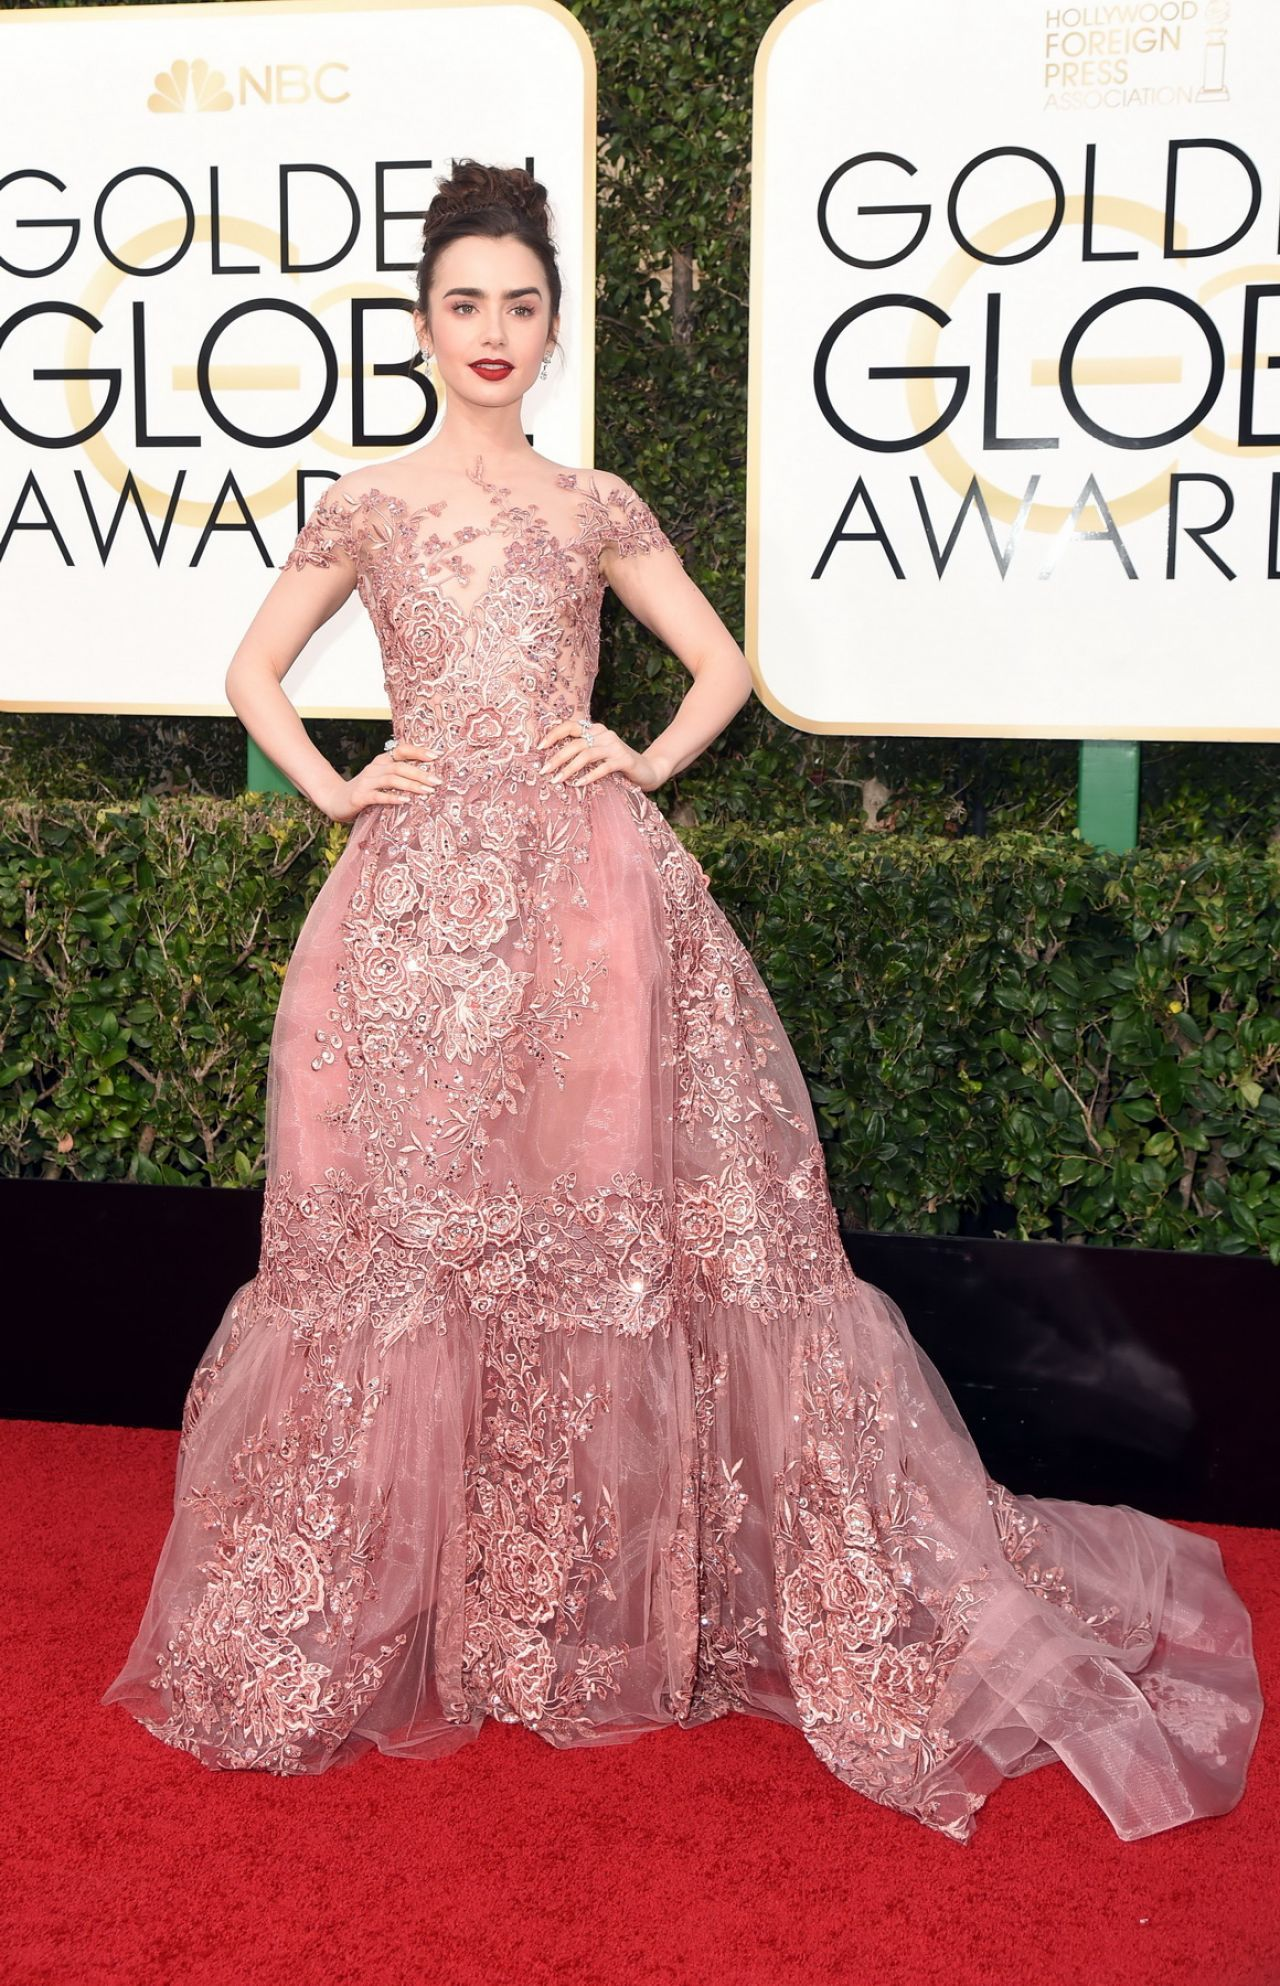 Lily Collins in Zuhair Murad Couture at 2017 Golden Globe Awards in ...